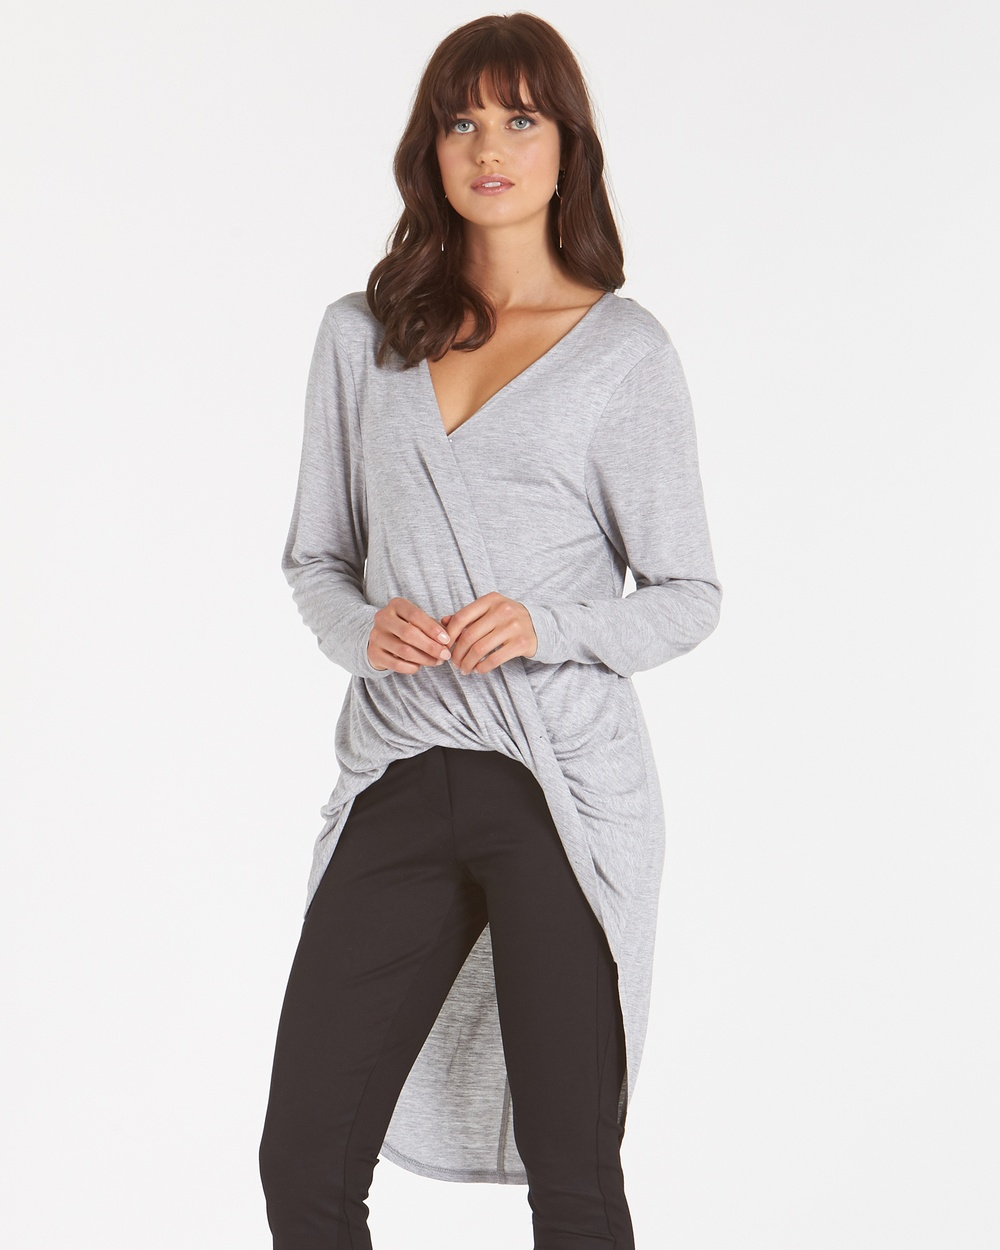 Amelius Shayla Jersey Top Tops Grey Shayla Jersey Top